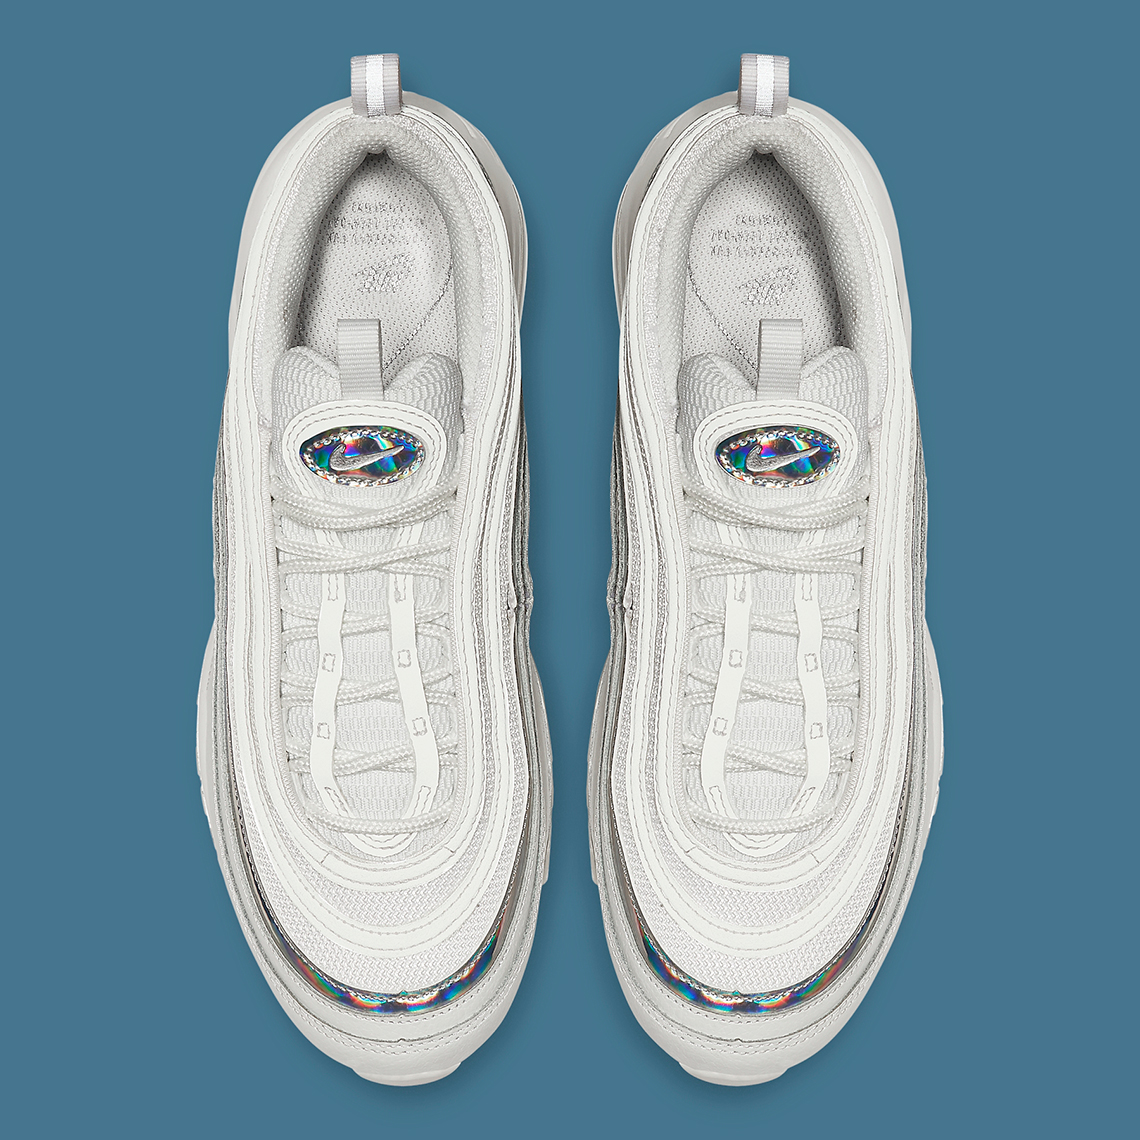 Air Max 97 Nike Air Max 97 London Summer Of Love Ci1504